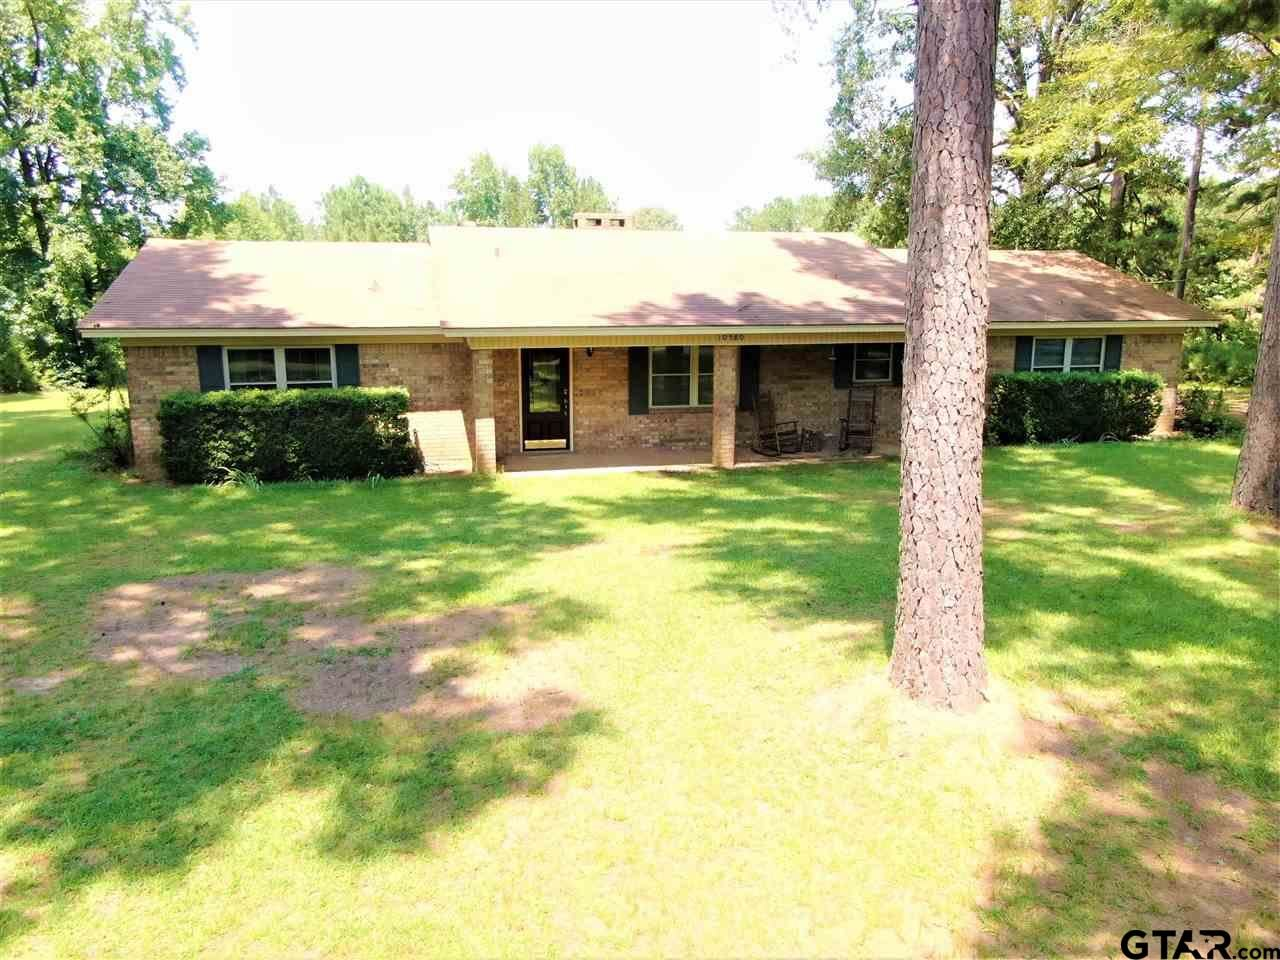 10580 Sycamore St, Overton, TX 75684 - #: 10138348